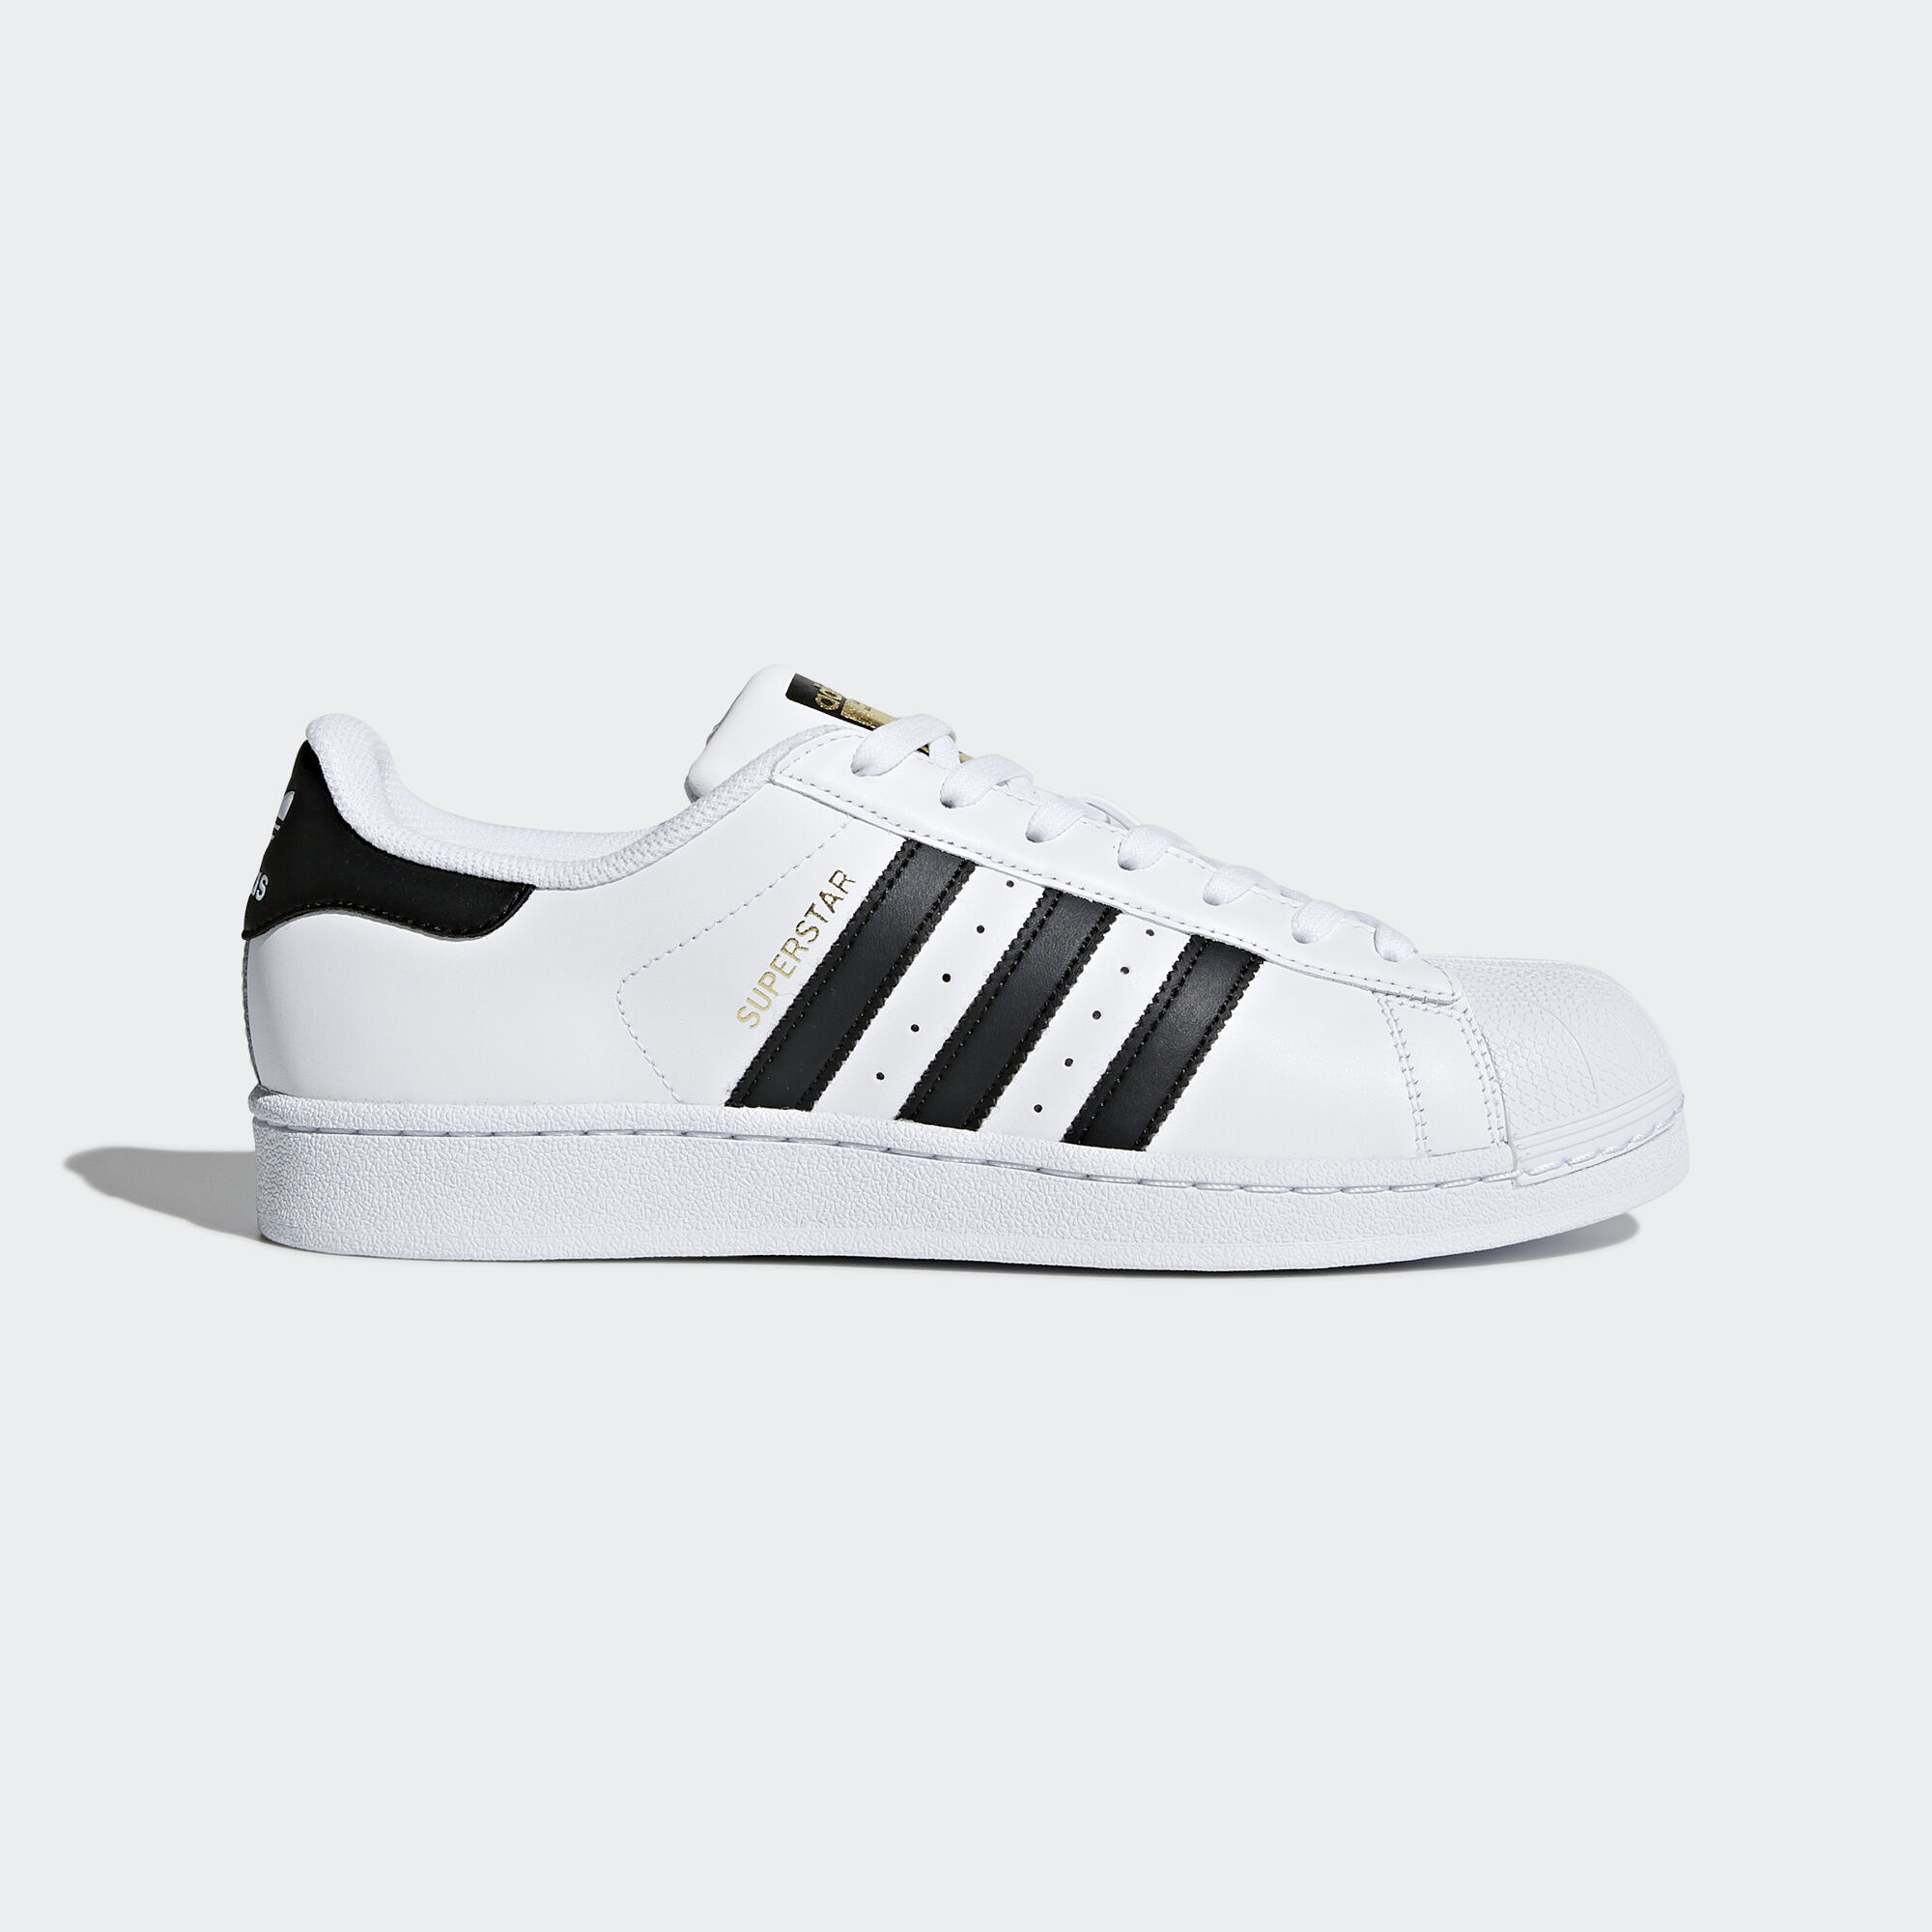 adidas Superstar Foundation Shoes adidas Malaysia